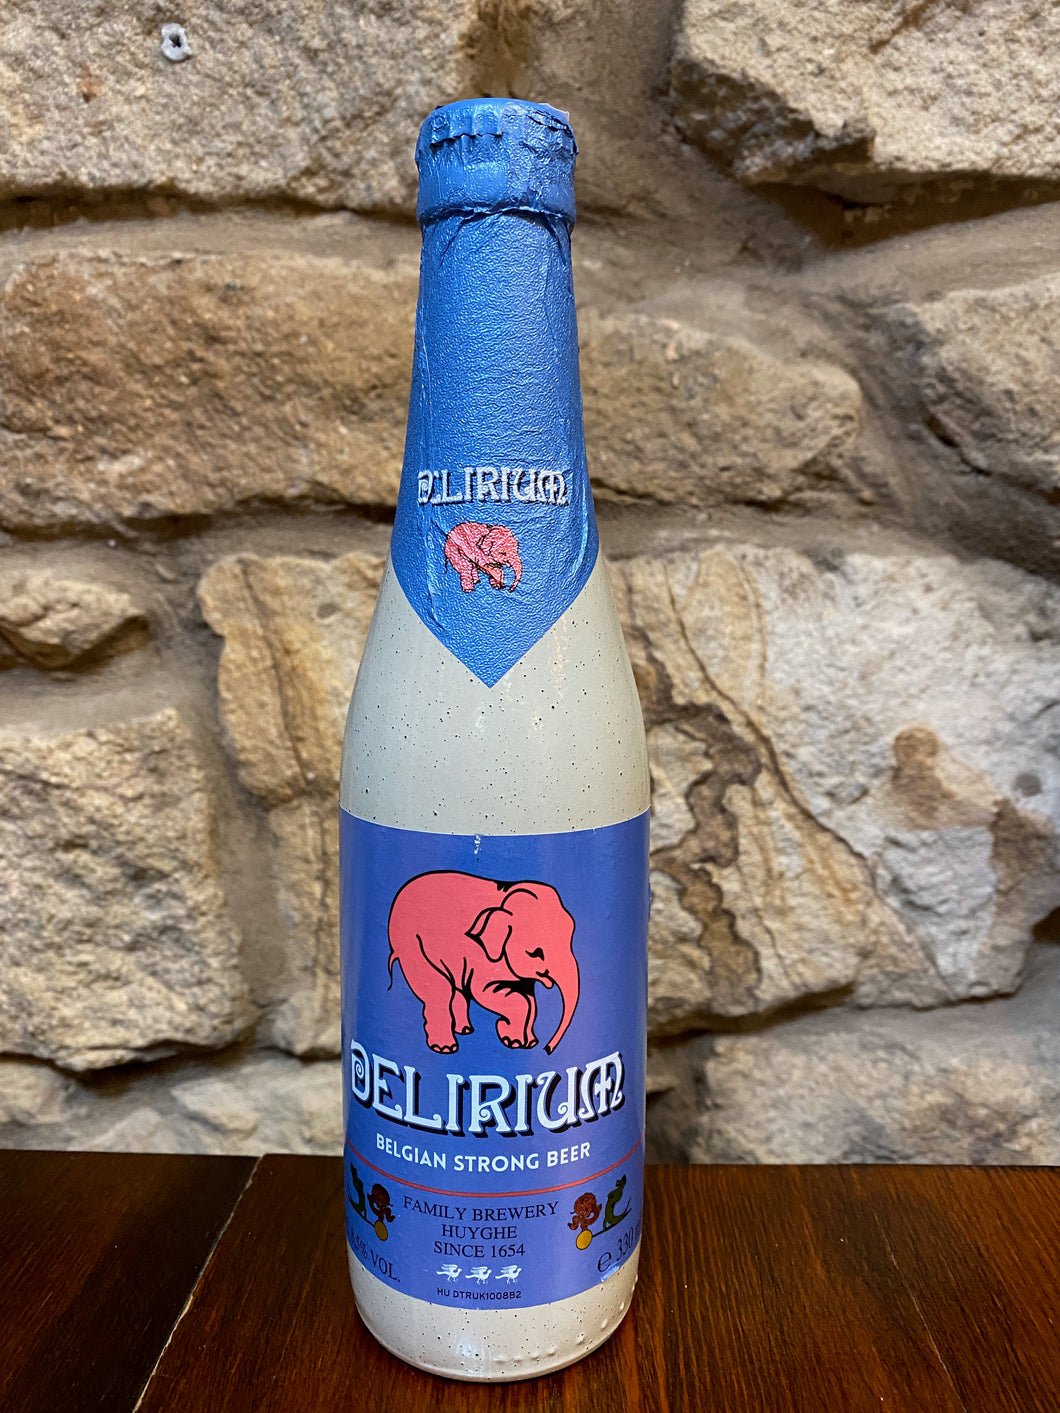 Huyghe Brewery - Delirium Tremens - Strong Golden Ale - 8.5% 330ml bottle